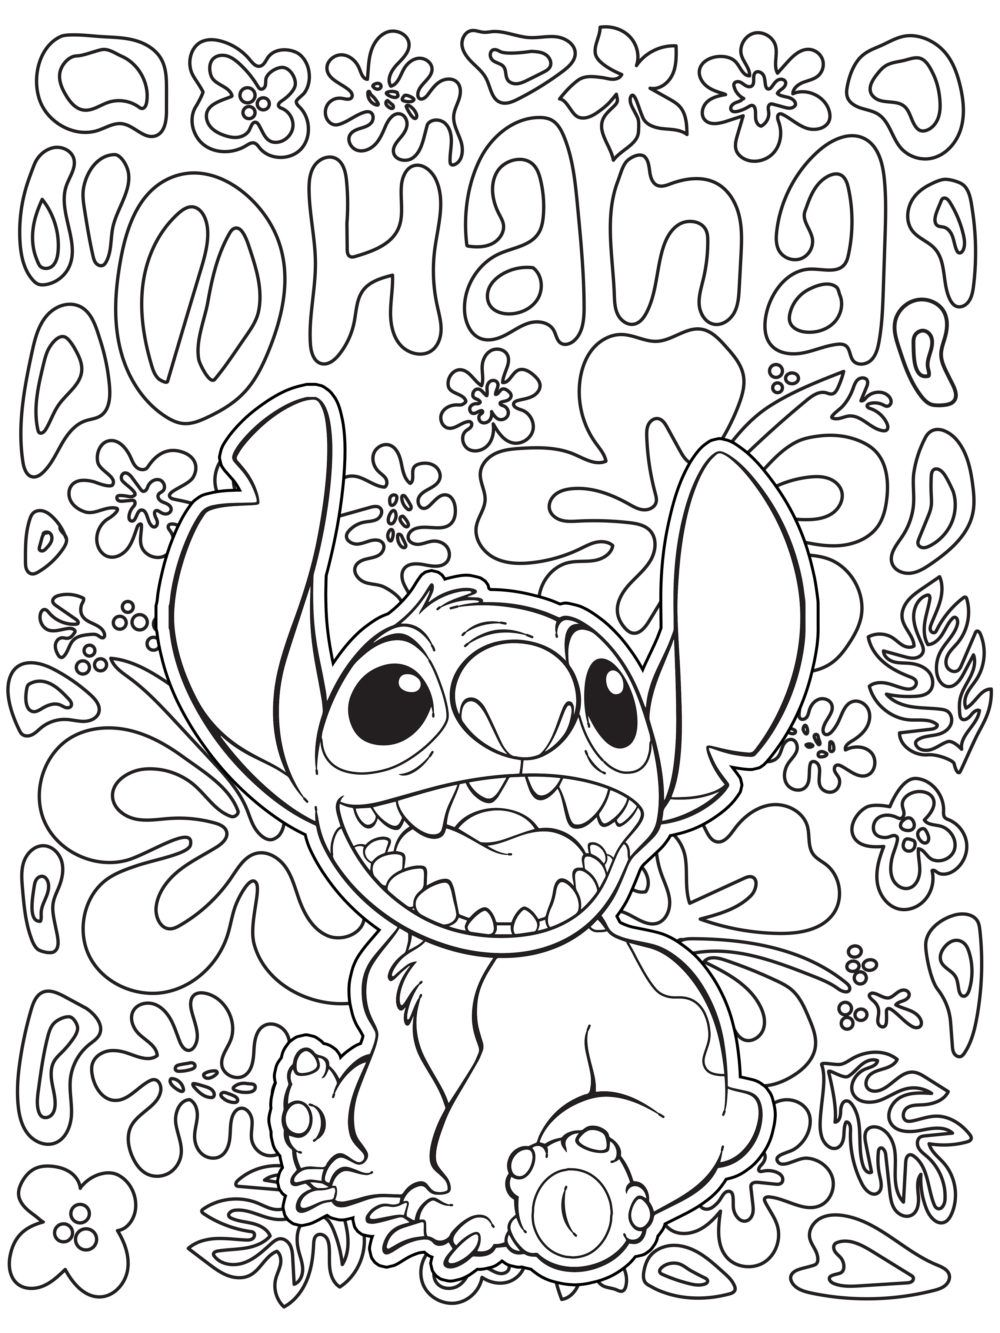 Celebrate National Coloring Book Day With | Disney style, Lilo ...